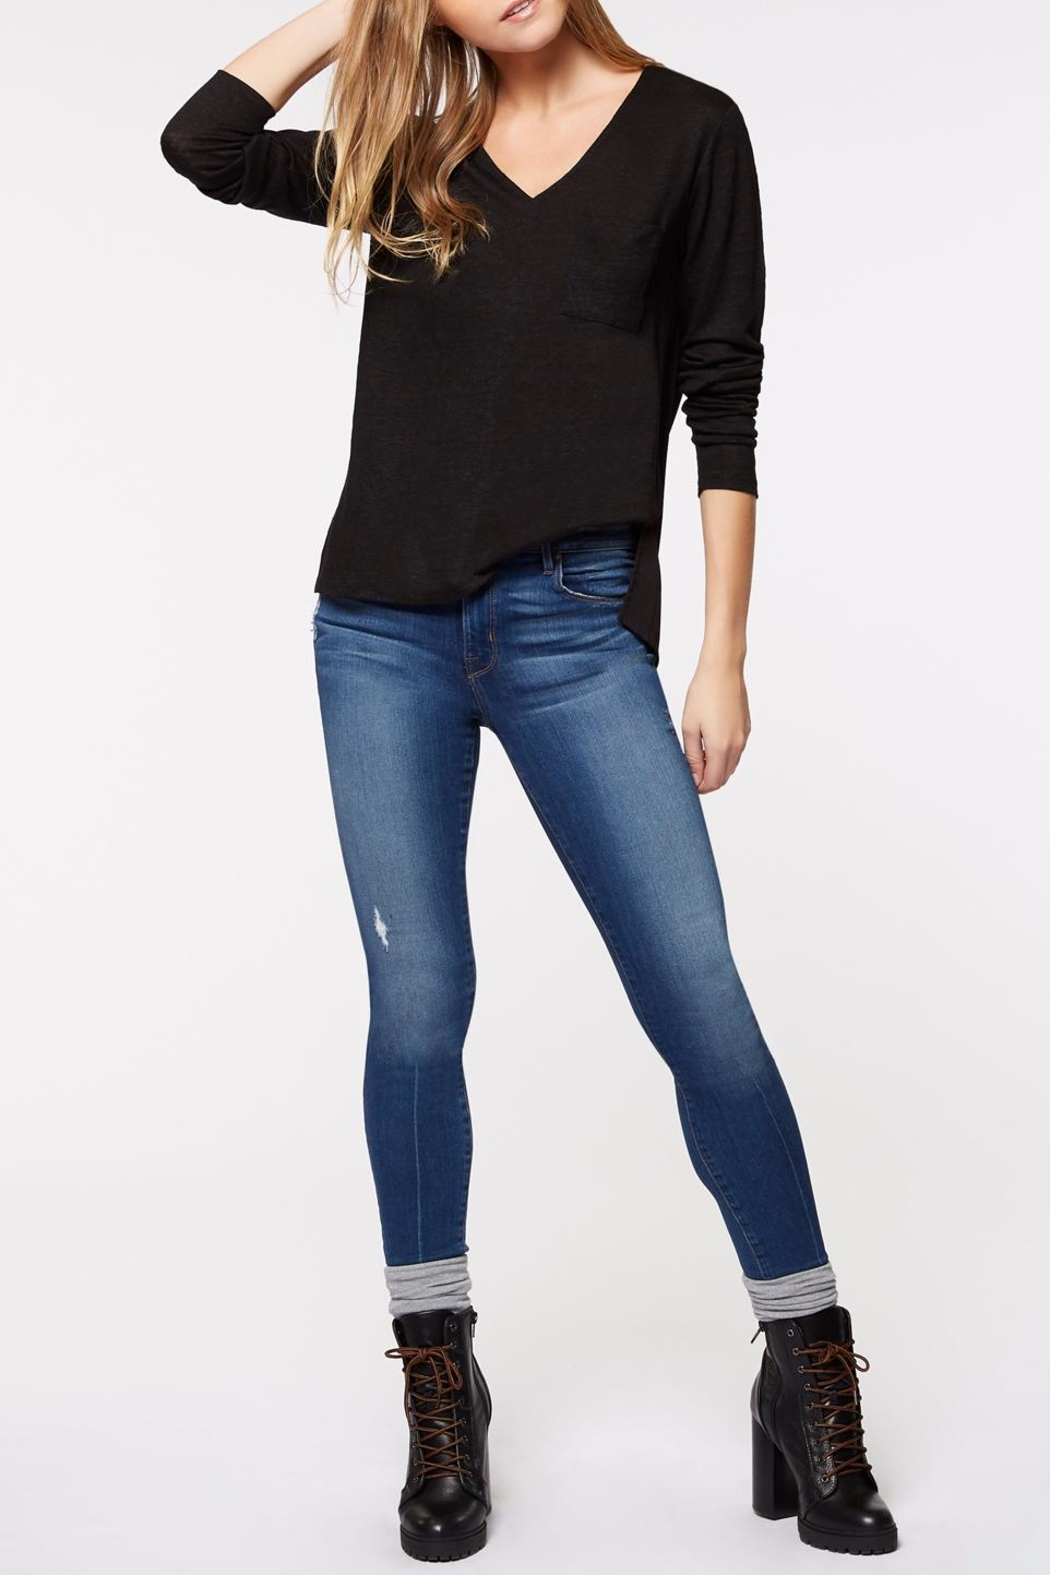 Sanctuary Daily Mix V Neck Top - Side Cropped Image